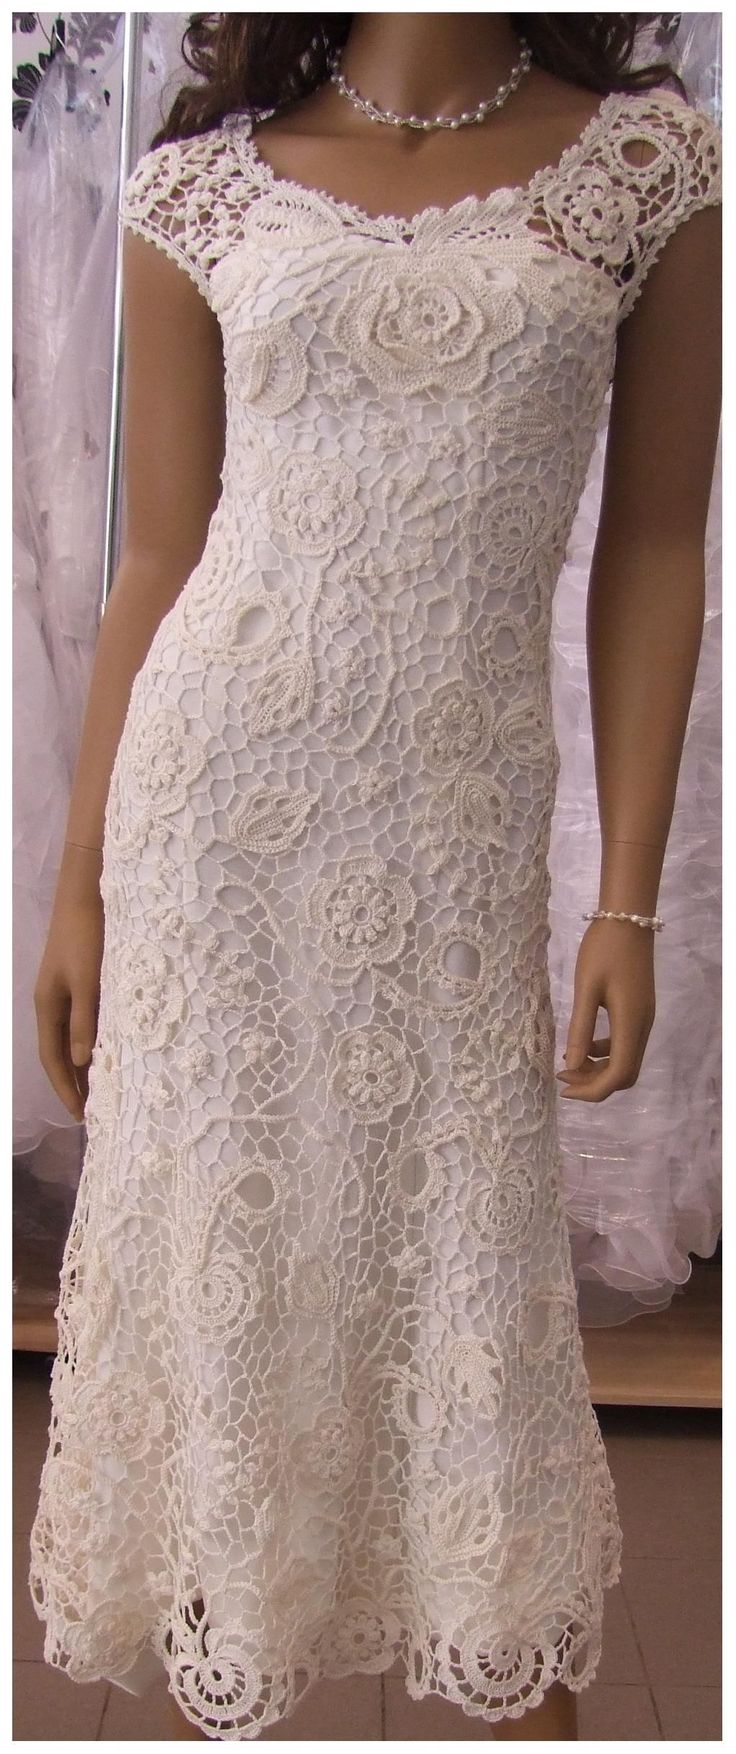 22 best crochet wedding dress images on pinterest for Crochet wedding dress patterns